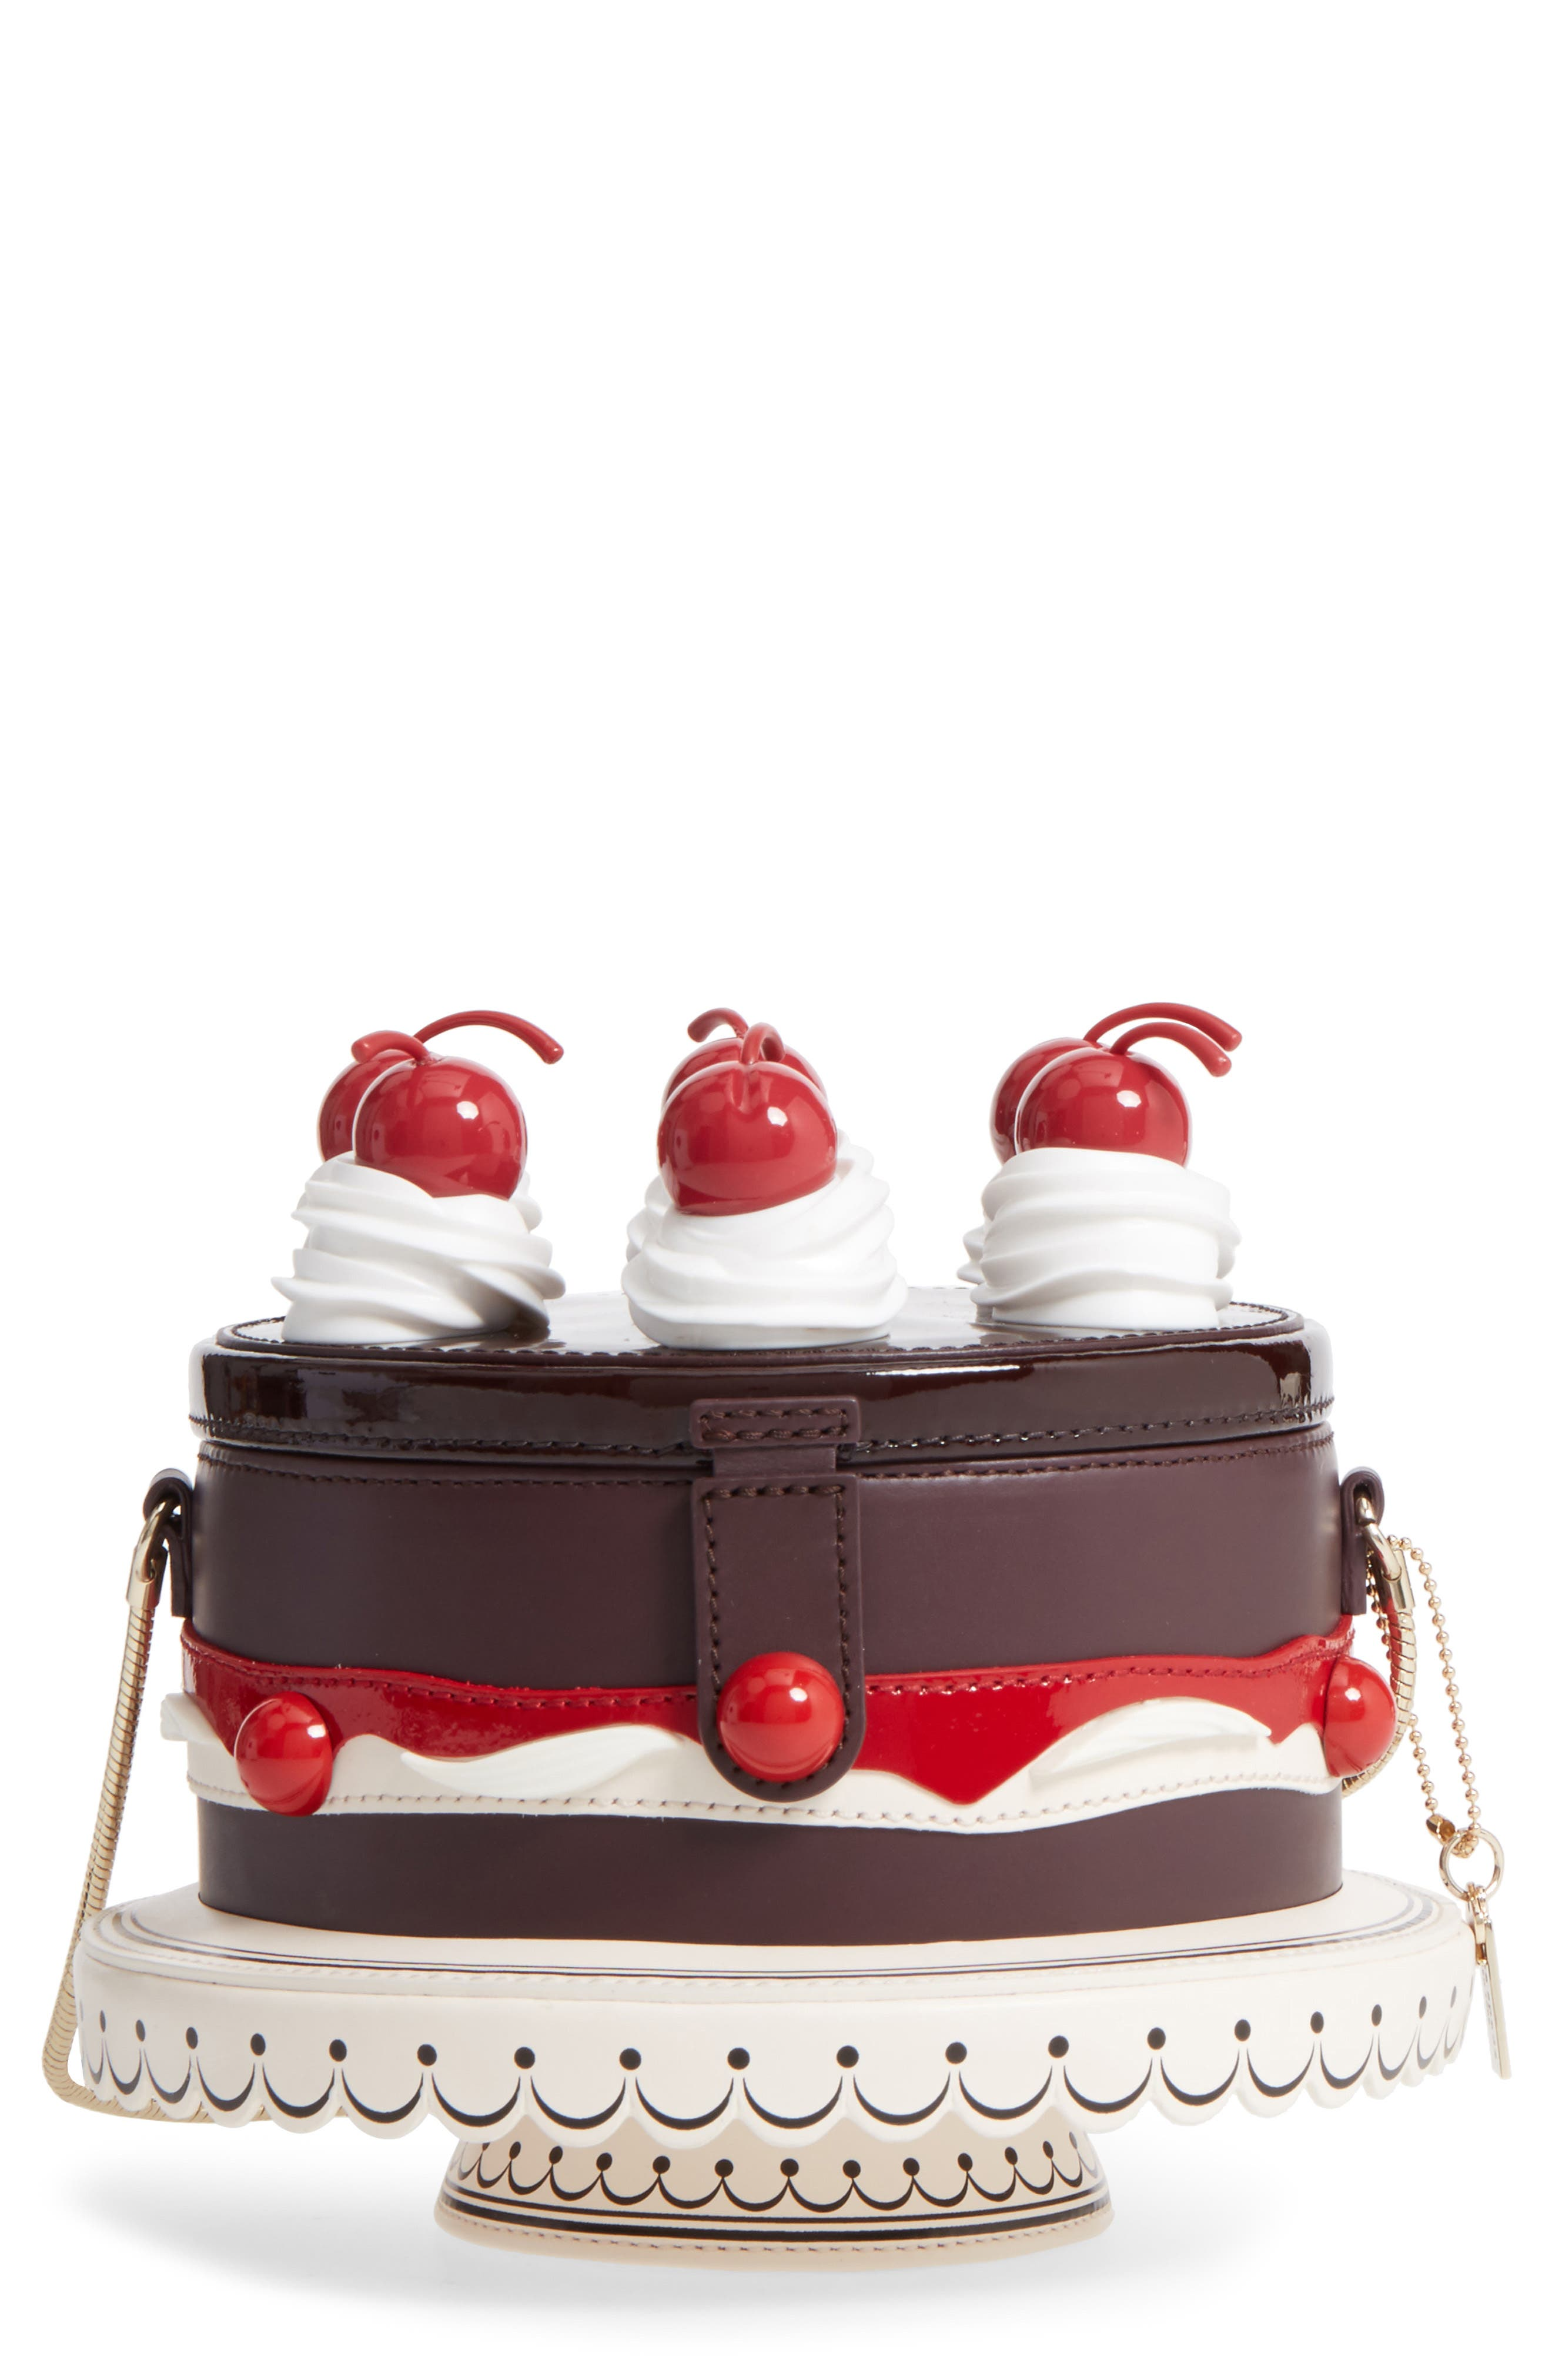 Alternate Image 1 Selected - kate spade new york ma cherie - cherry cake leather shoulder bag